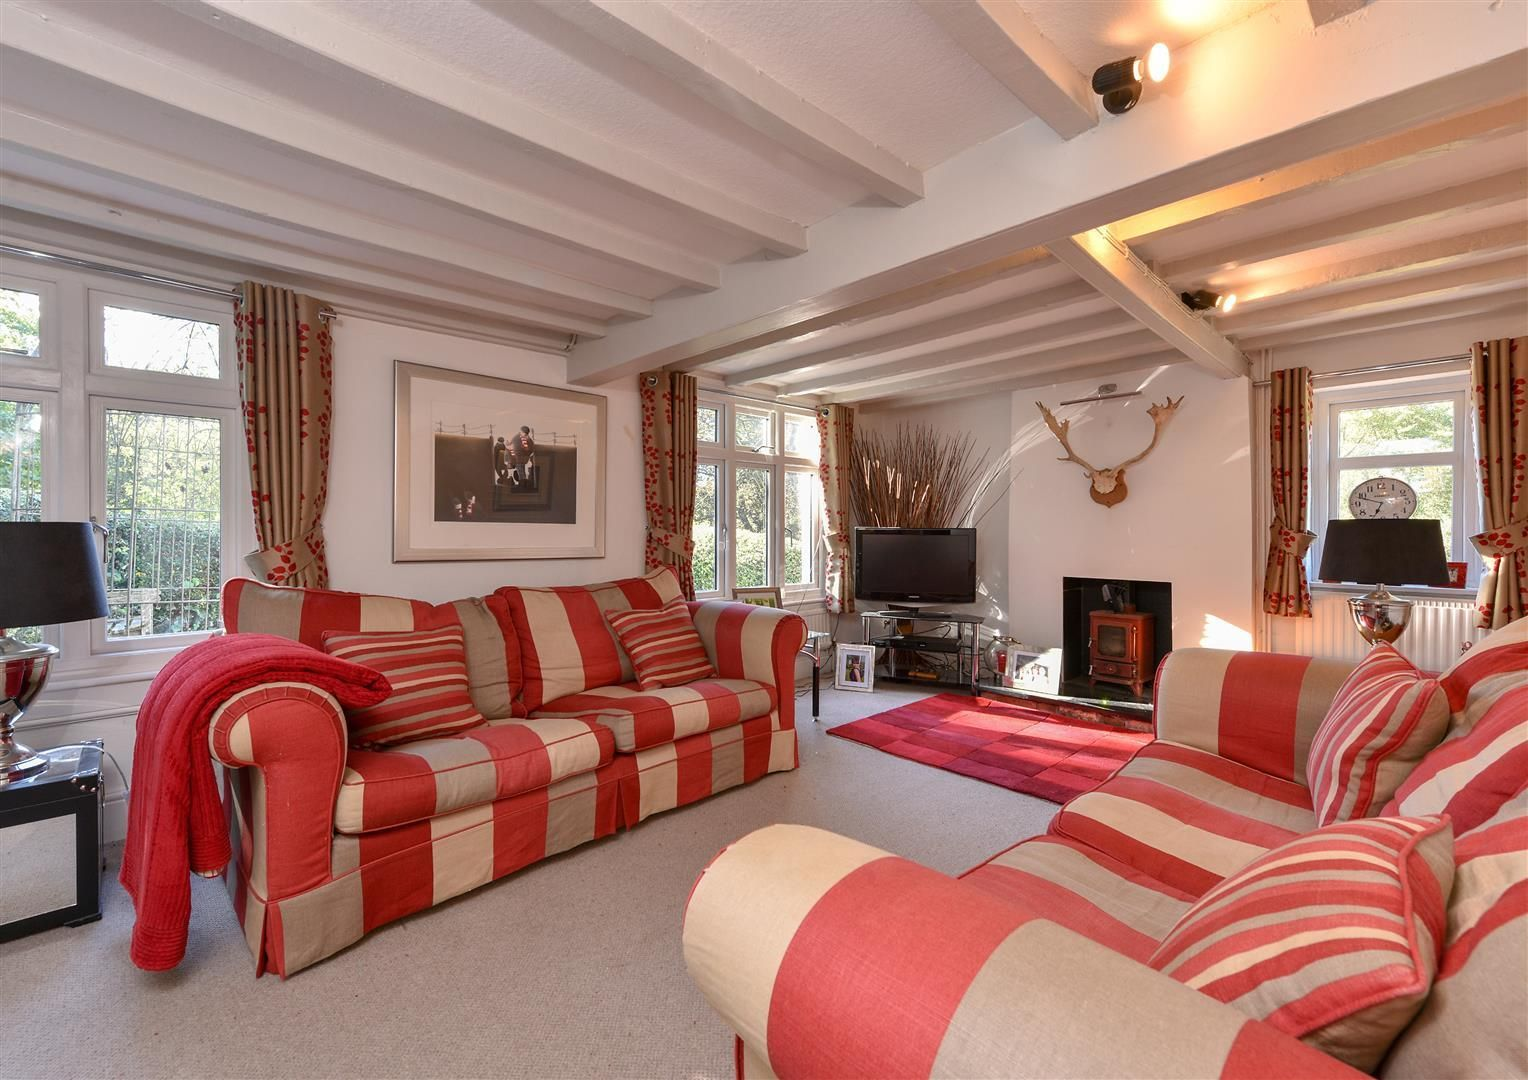 4 bed house for sale in Clent 4